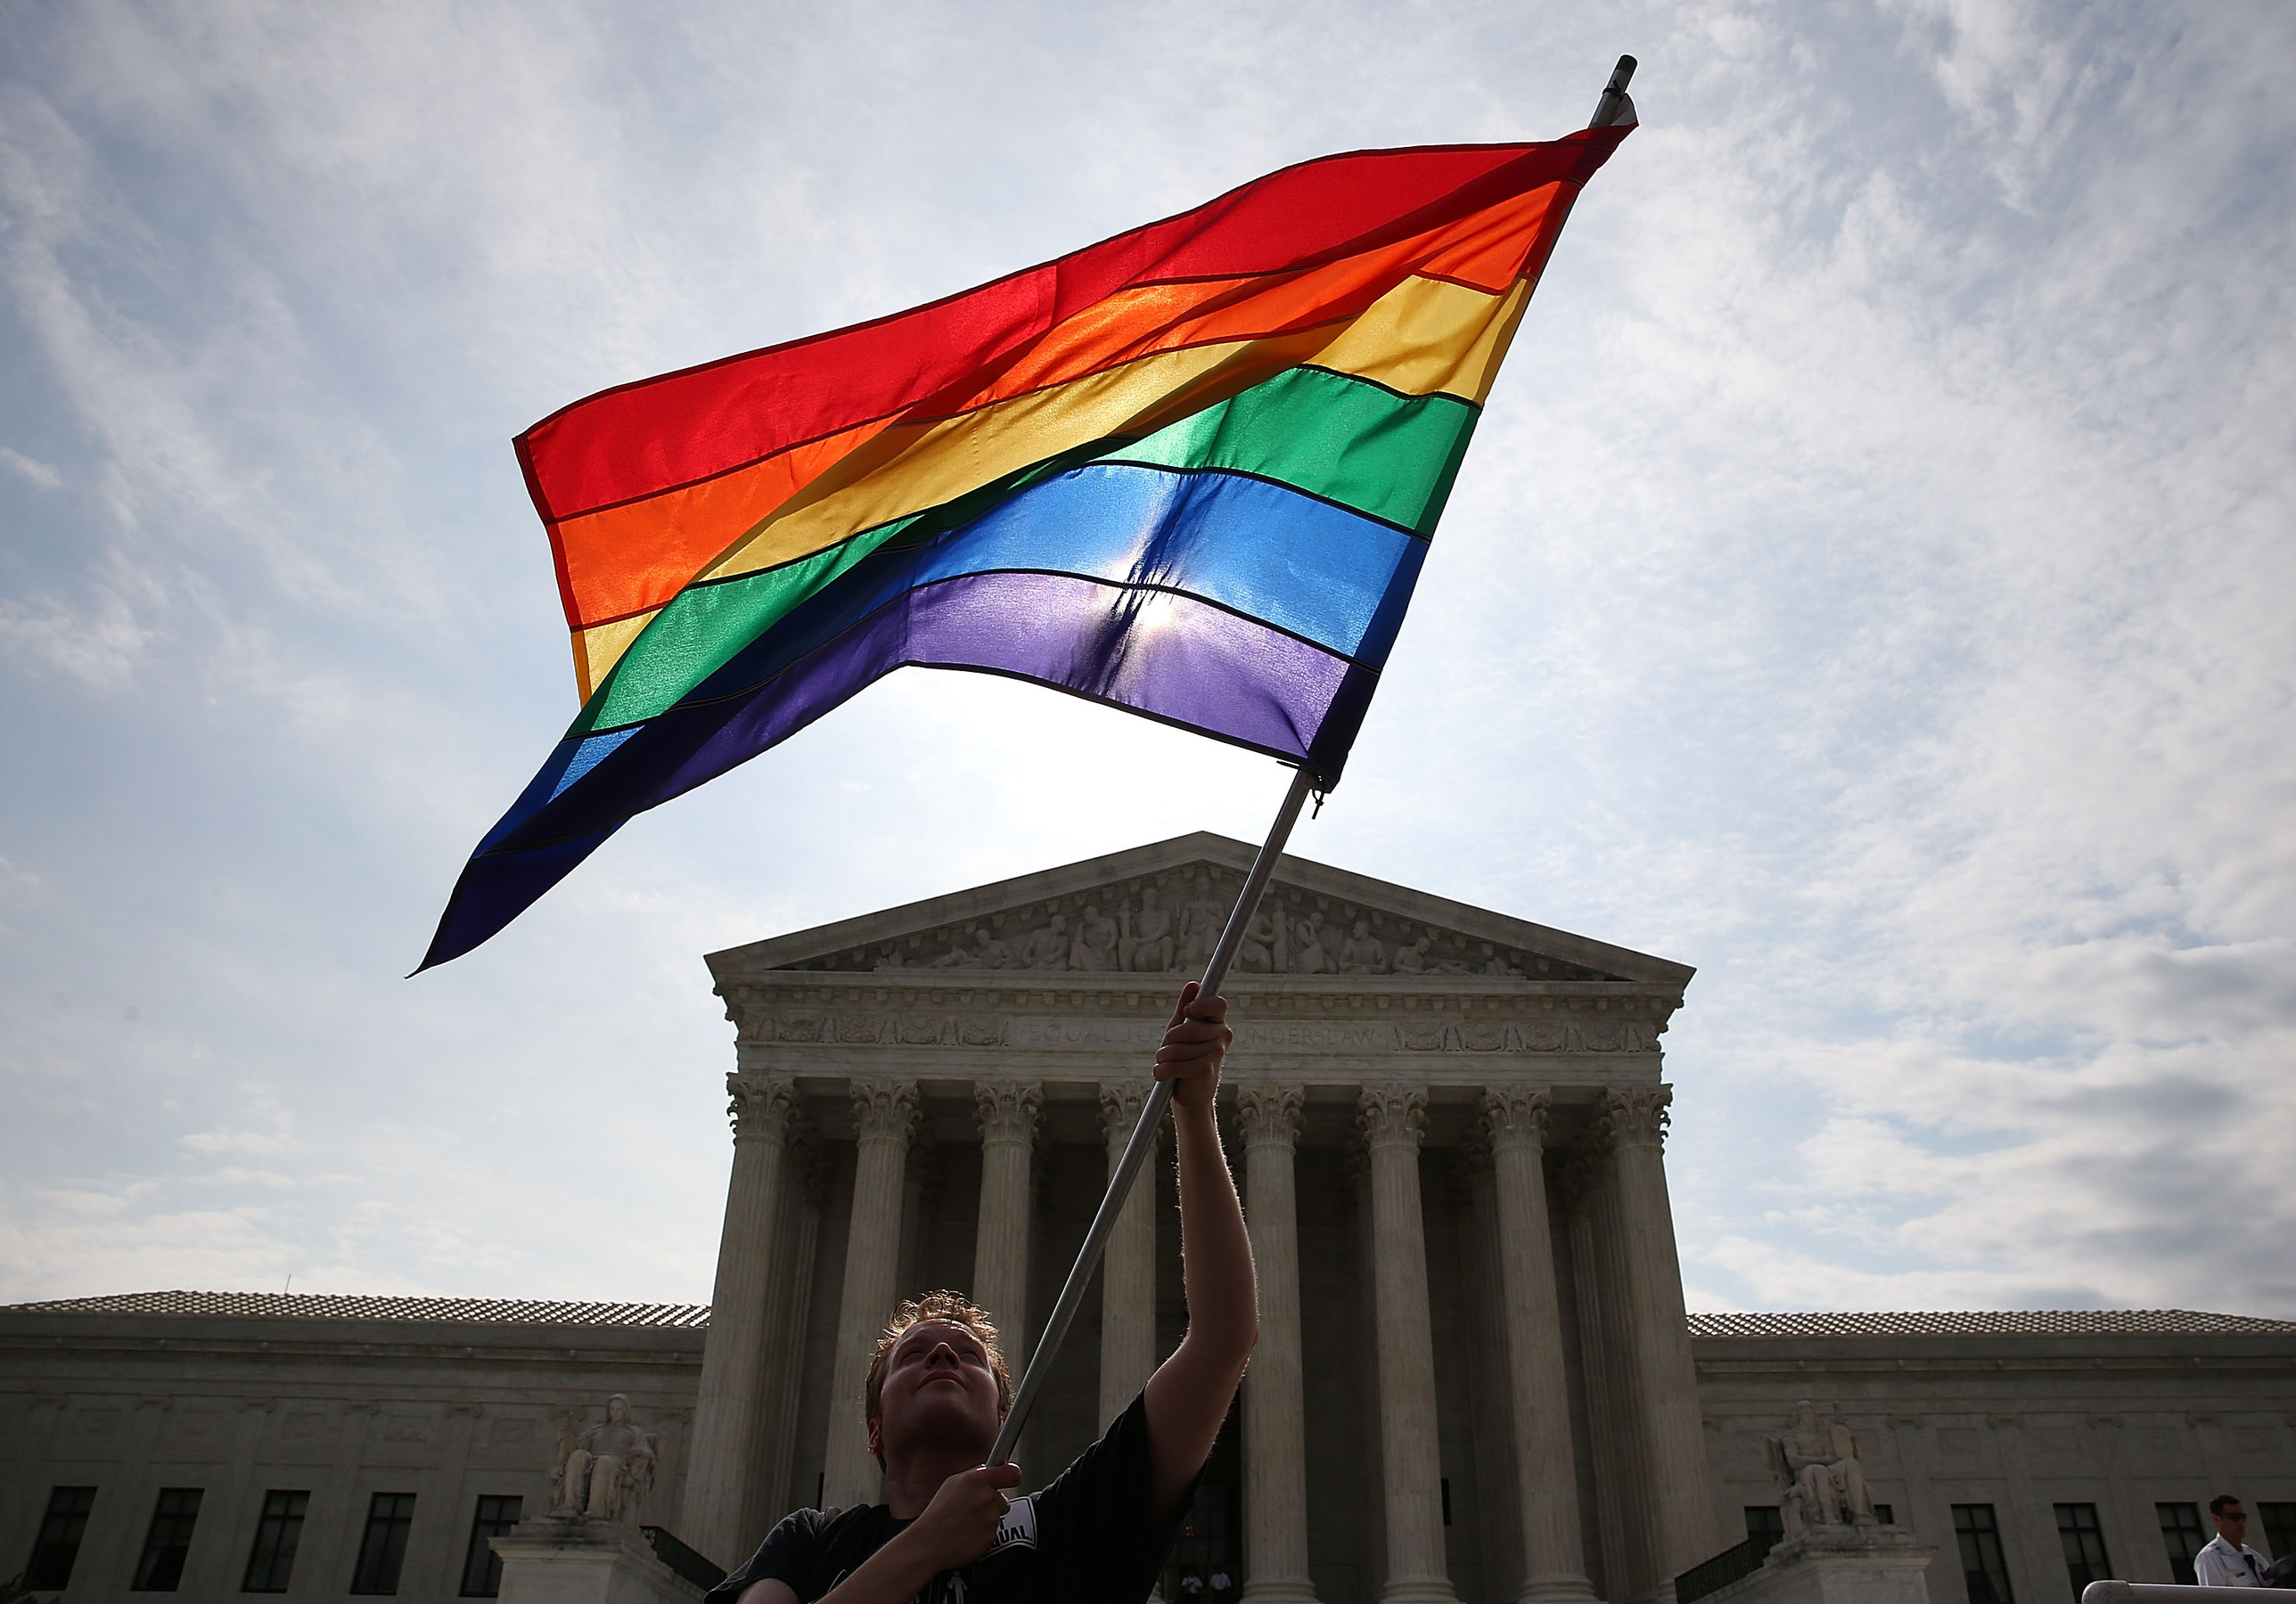 Decision Awaited On Gay Marriage From Supreme Court